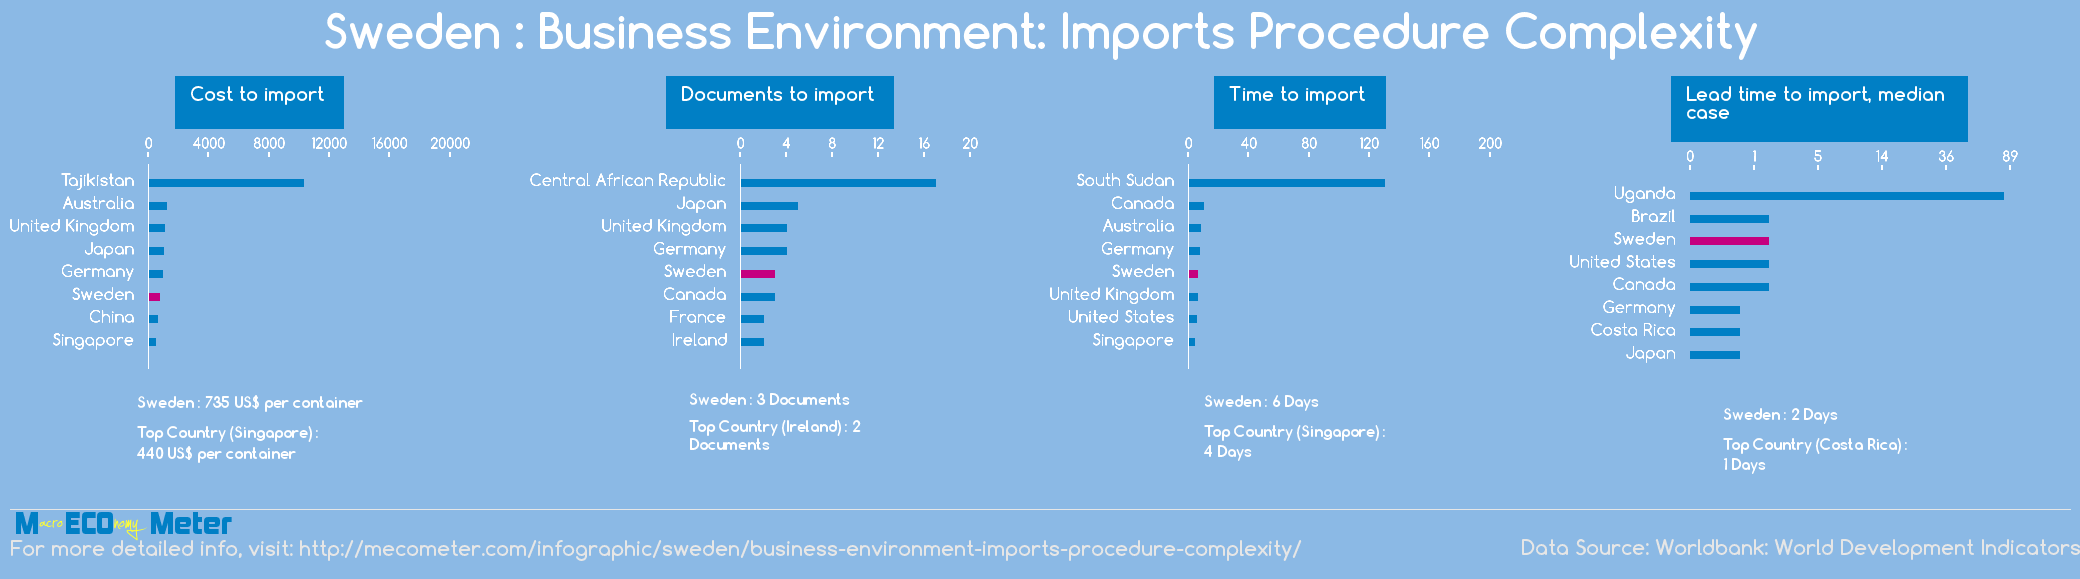 Sweden : Business Environment: Imports Procedure Complexity